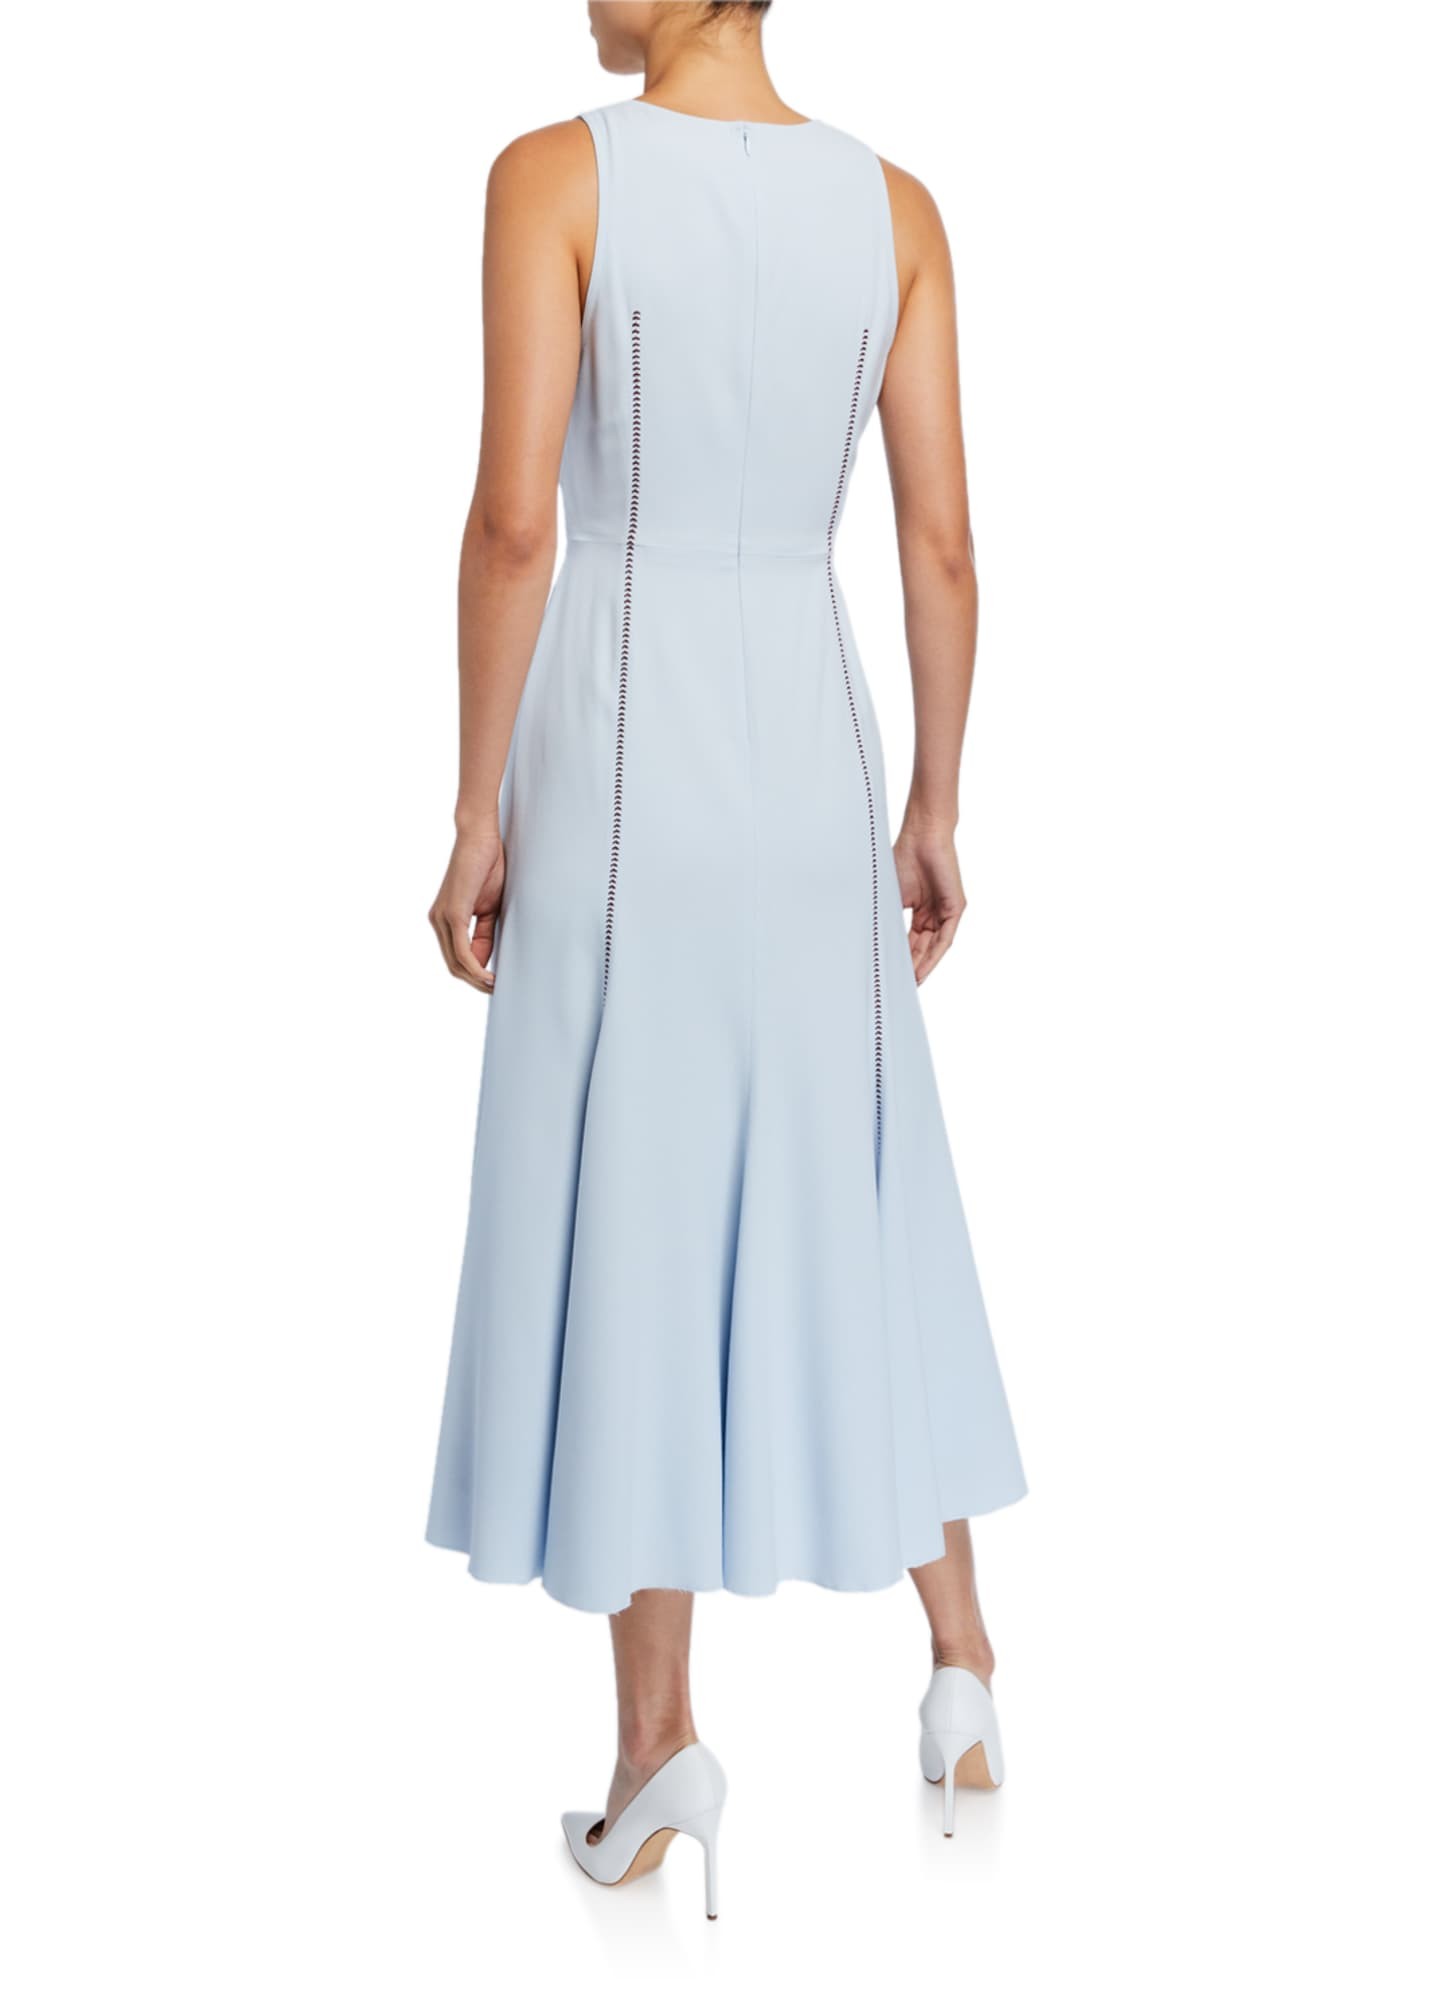 Image 2 of 2: Annabelle Contrast-Stitched Sleeveless Silk Crepe Dress